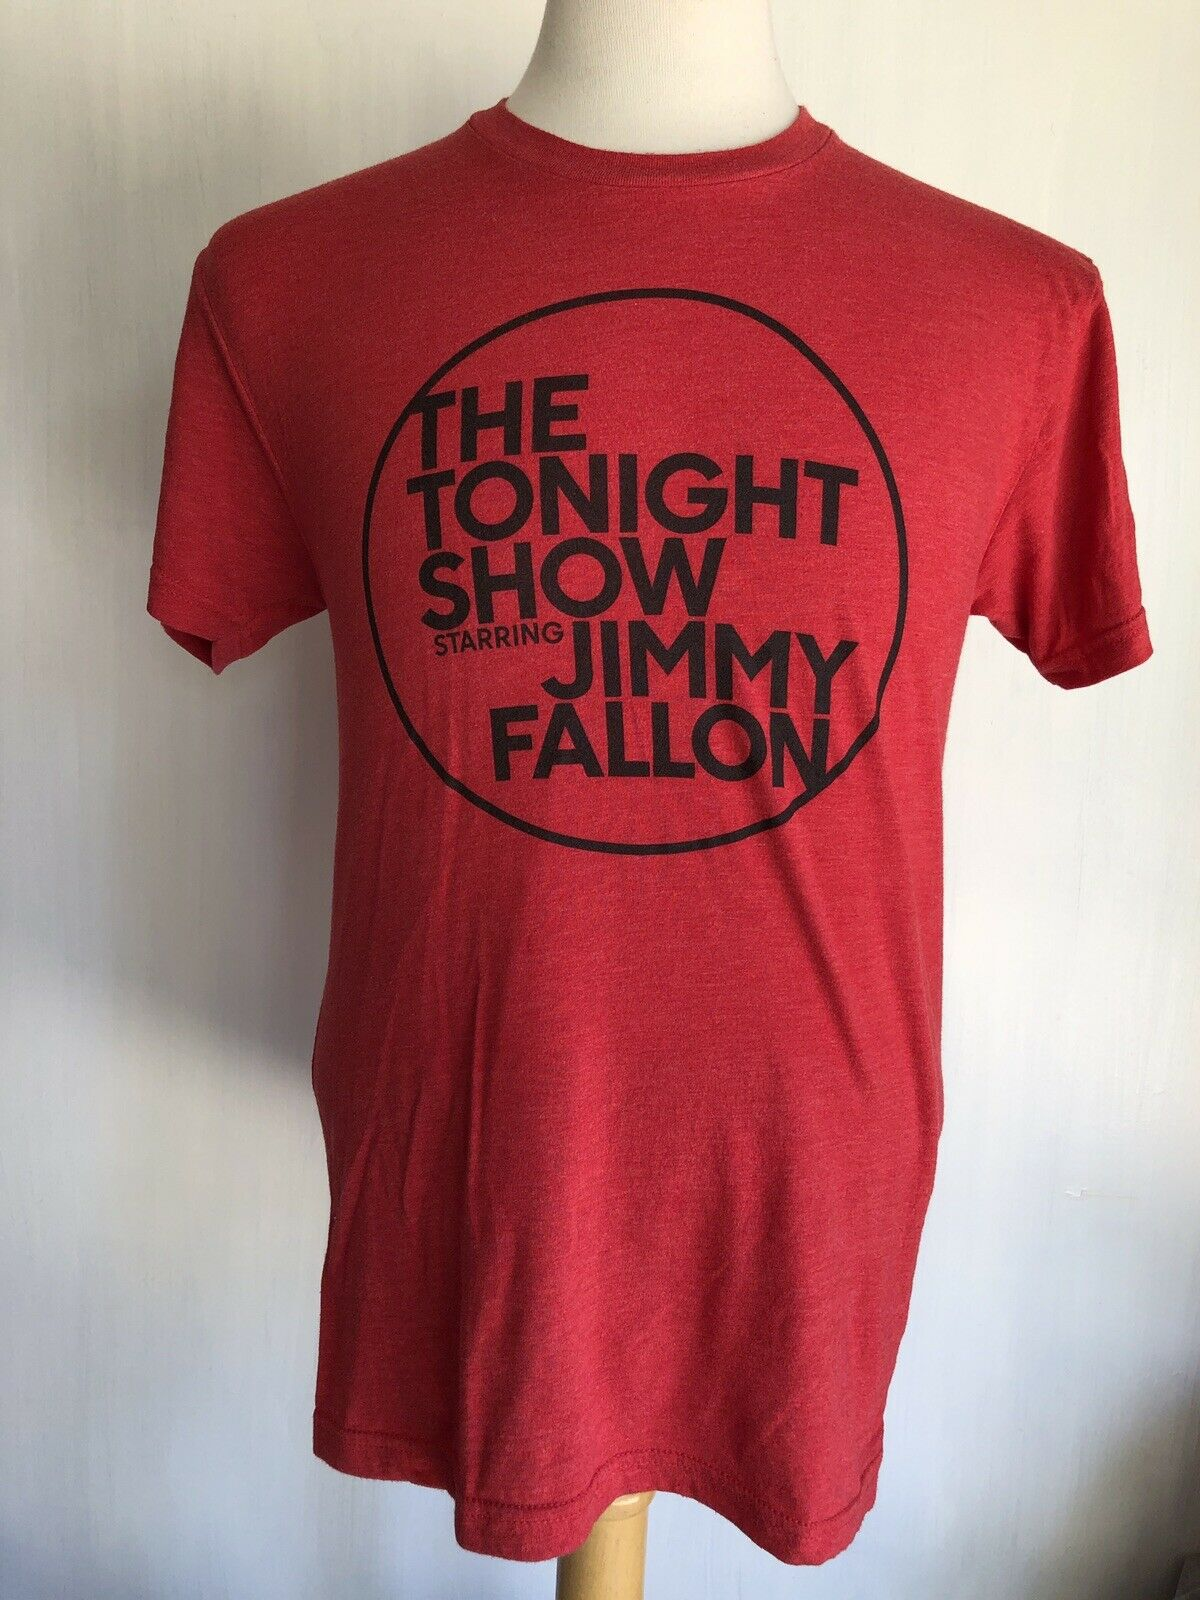 <font><b>THE</b></font> <font><b>TONIGHT</b></font> <font><b>SHOW</b></font> STARRING JIMMY FALLON Official NBC Red T-Shirt Size Medium image